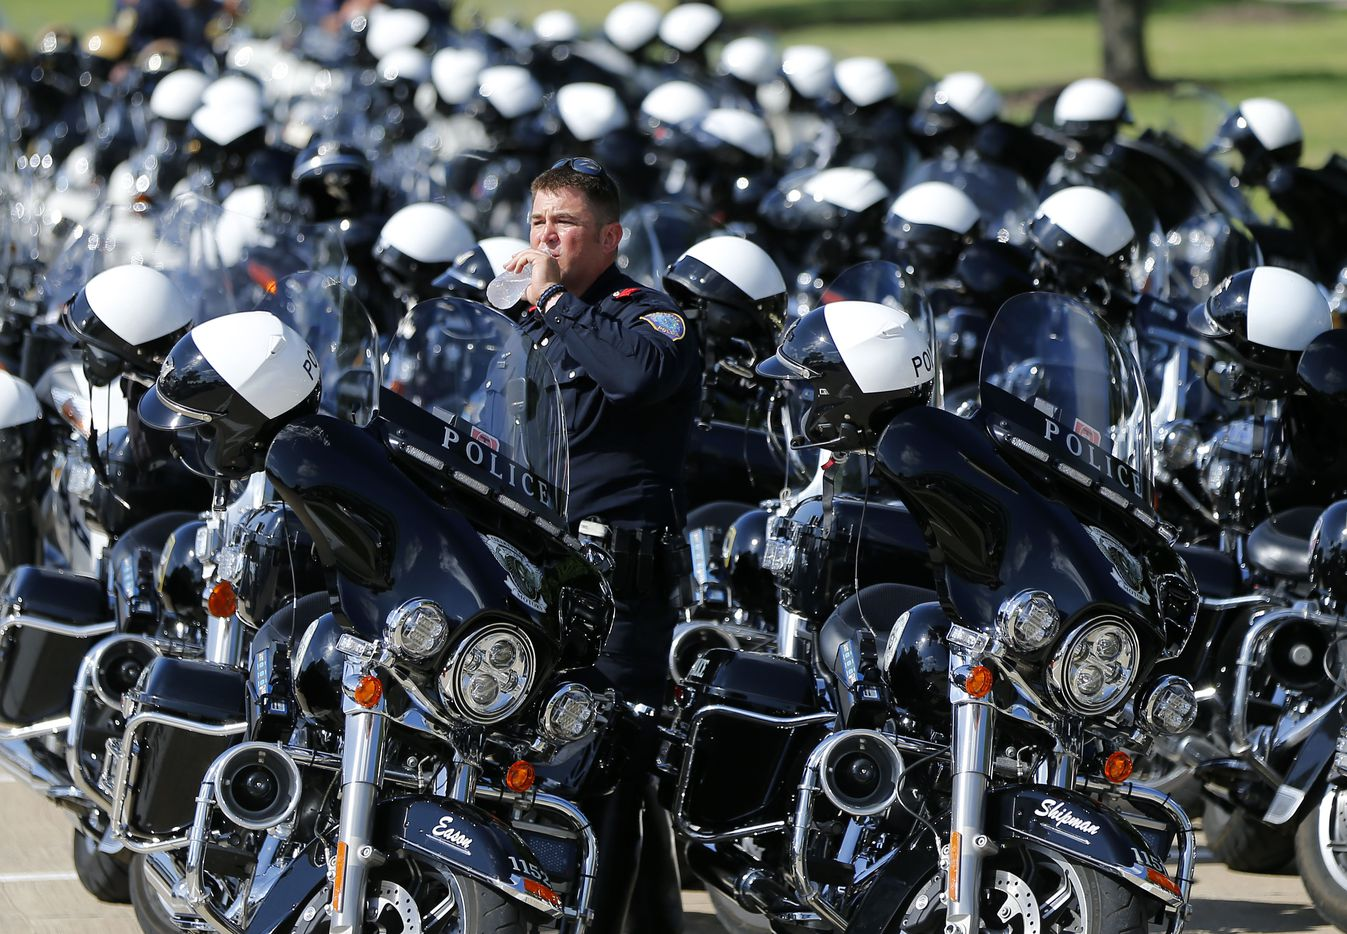 Colleyville motorcycle police officer Dustin Eason cools down with a drink of water as he waits for the funeral procession of fallen Dallas police officer Lorne Ahrens at Prestonwood Baptist Church in Plano, Wednesday, July 12, 2016.